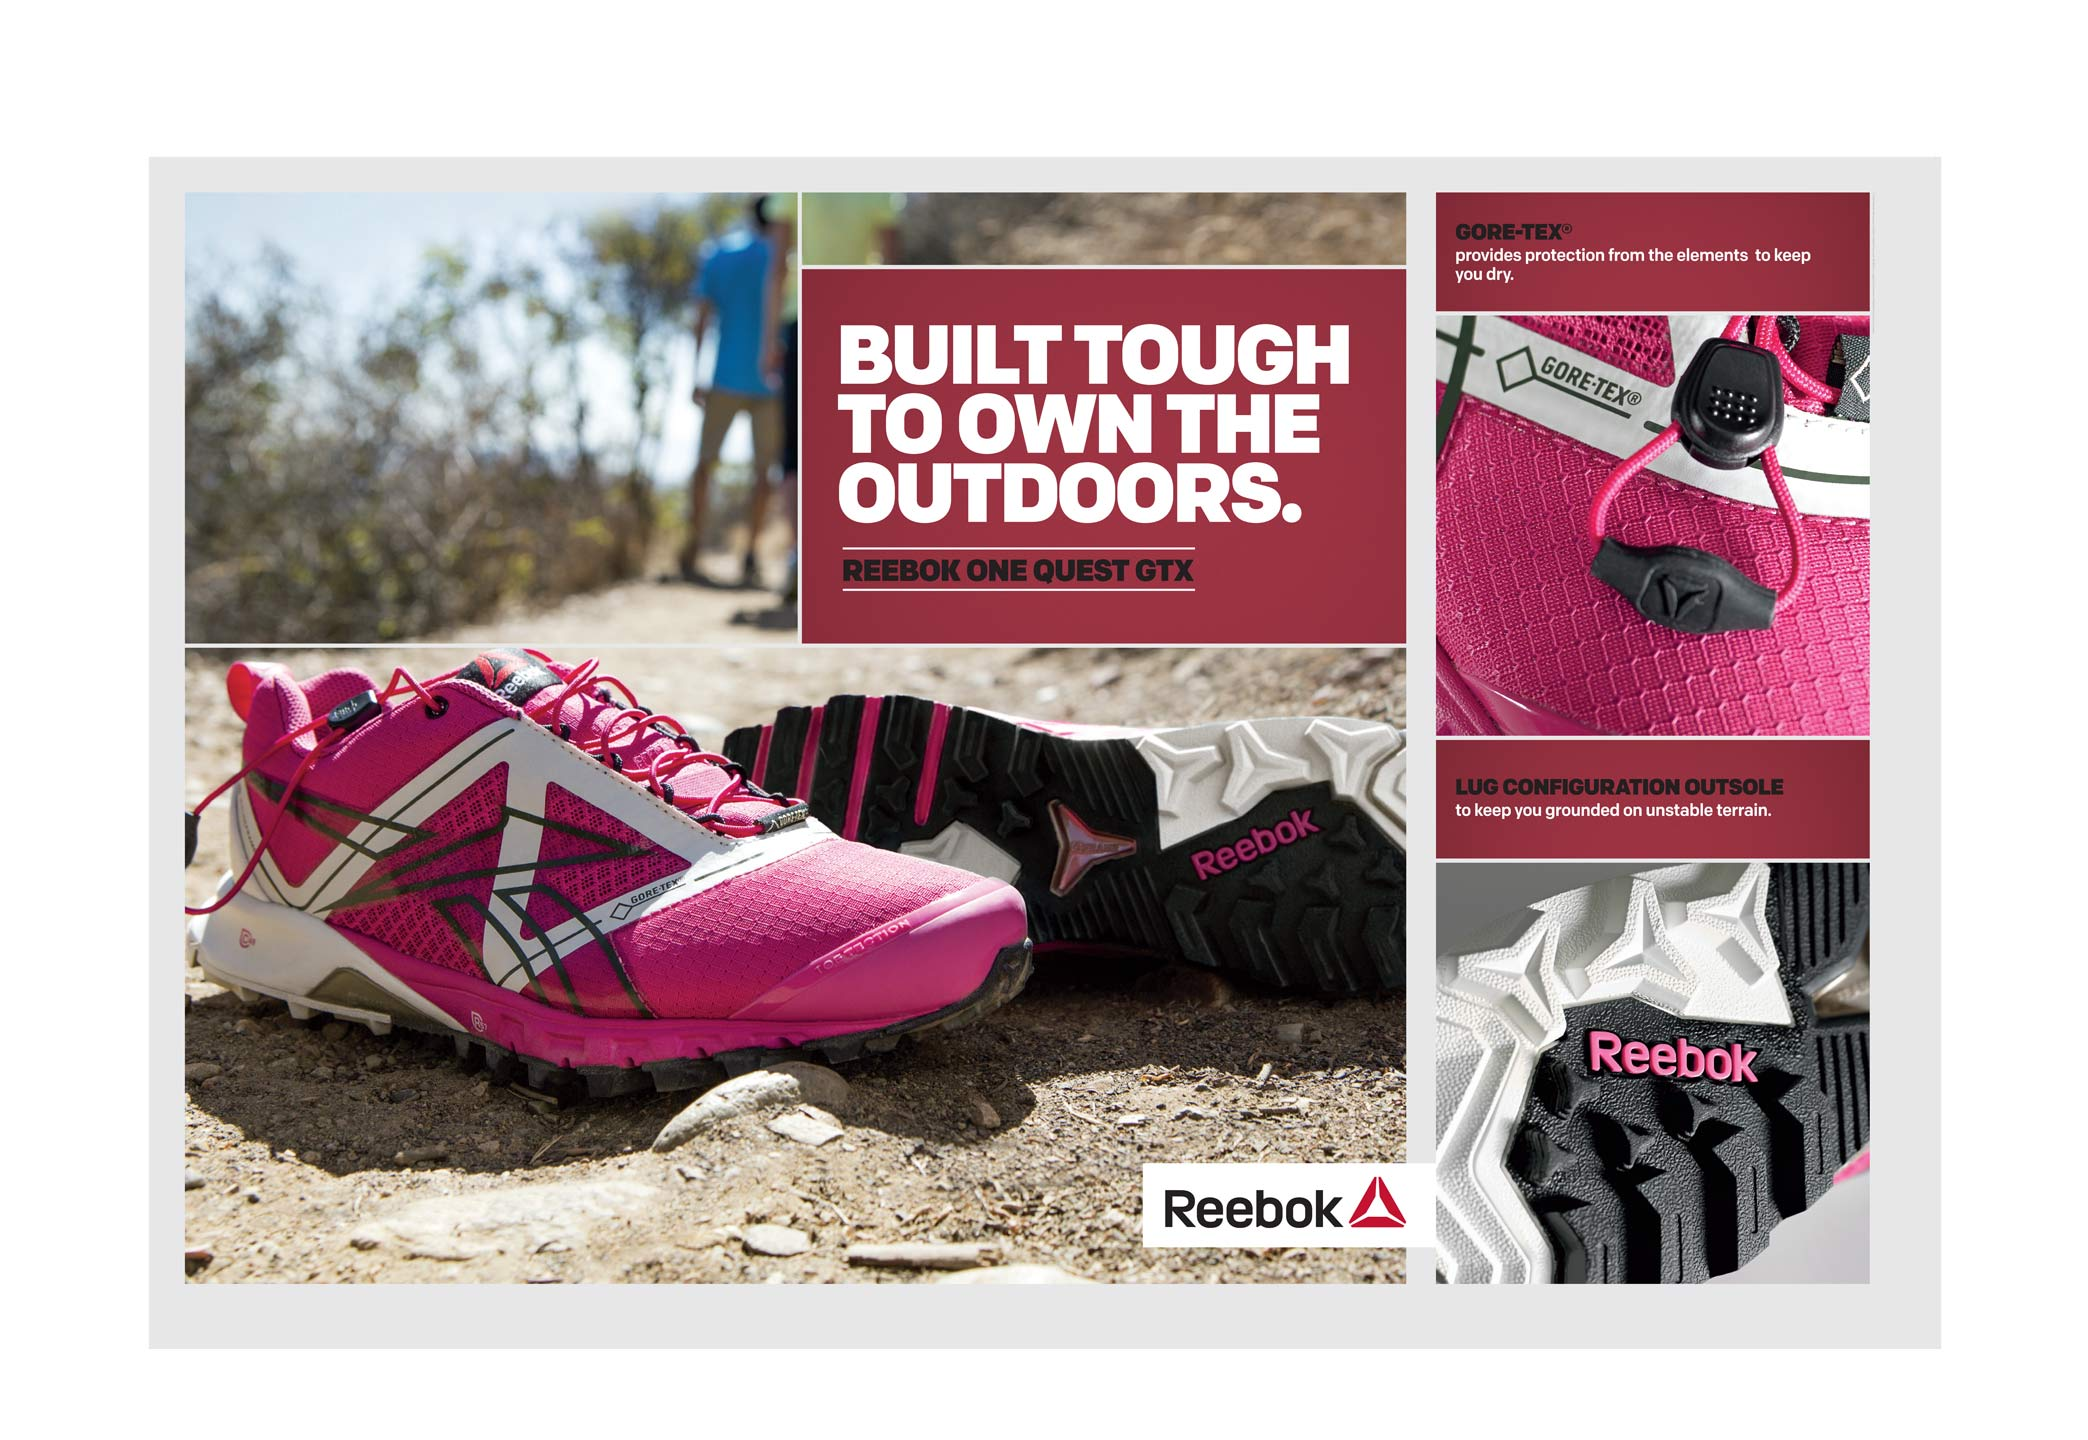 Reebok_Sports_Apparel_Advertising_Photographer_Los_Angeles_Tennis_Shoes_Sneakers_Running_Lifestyle